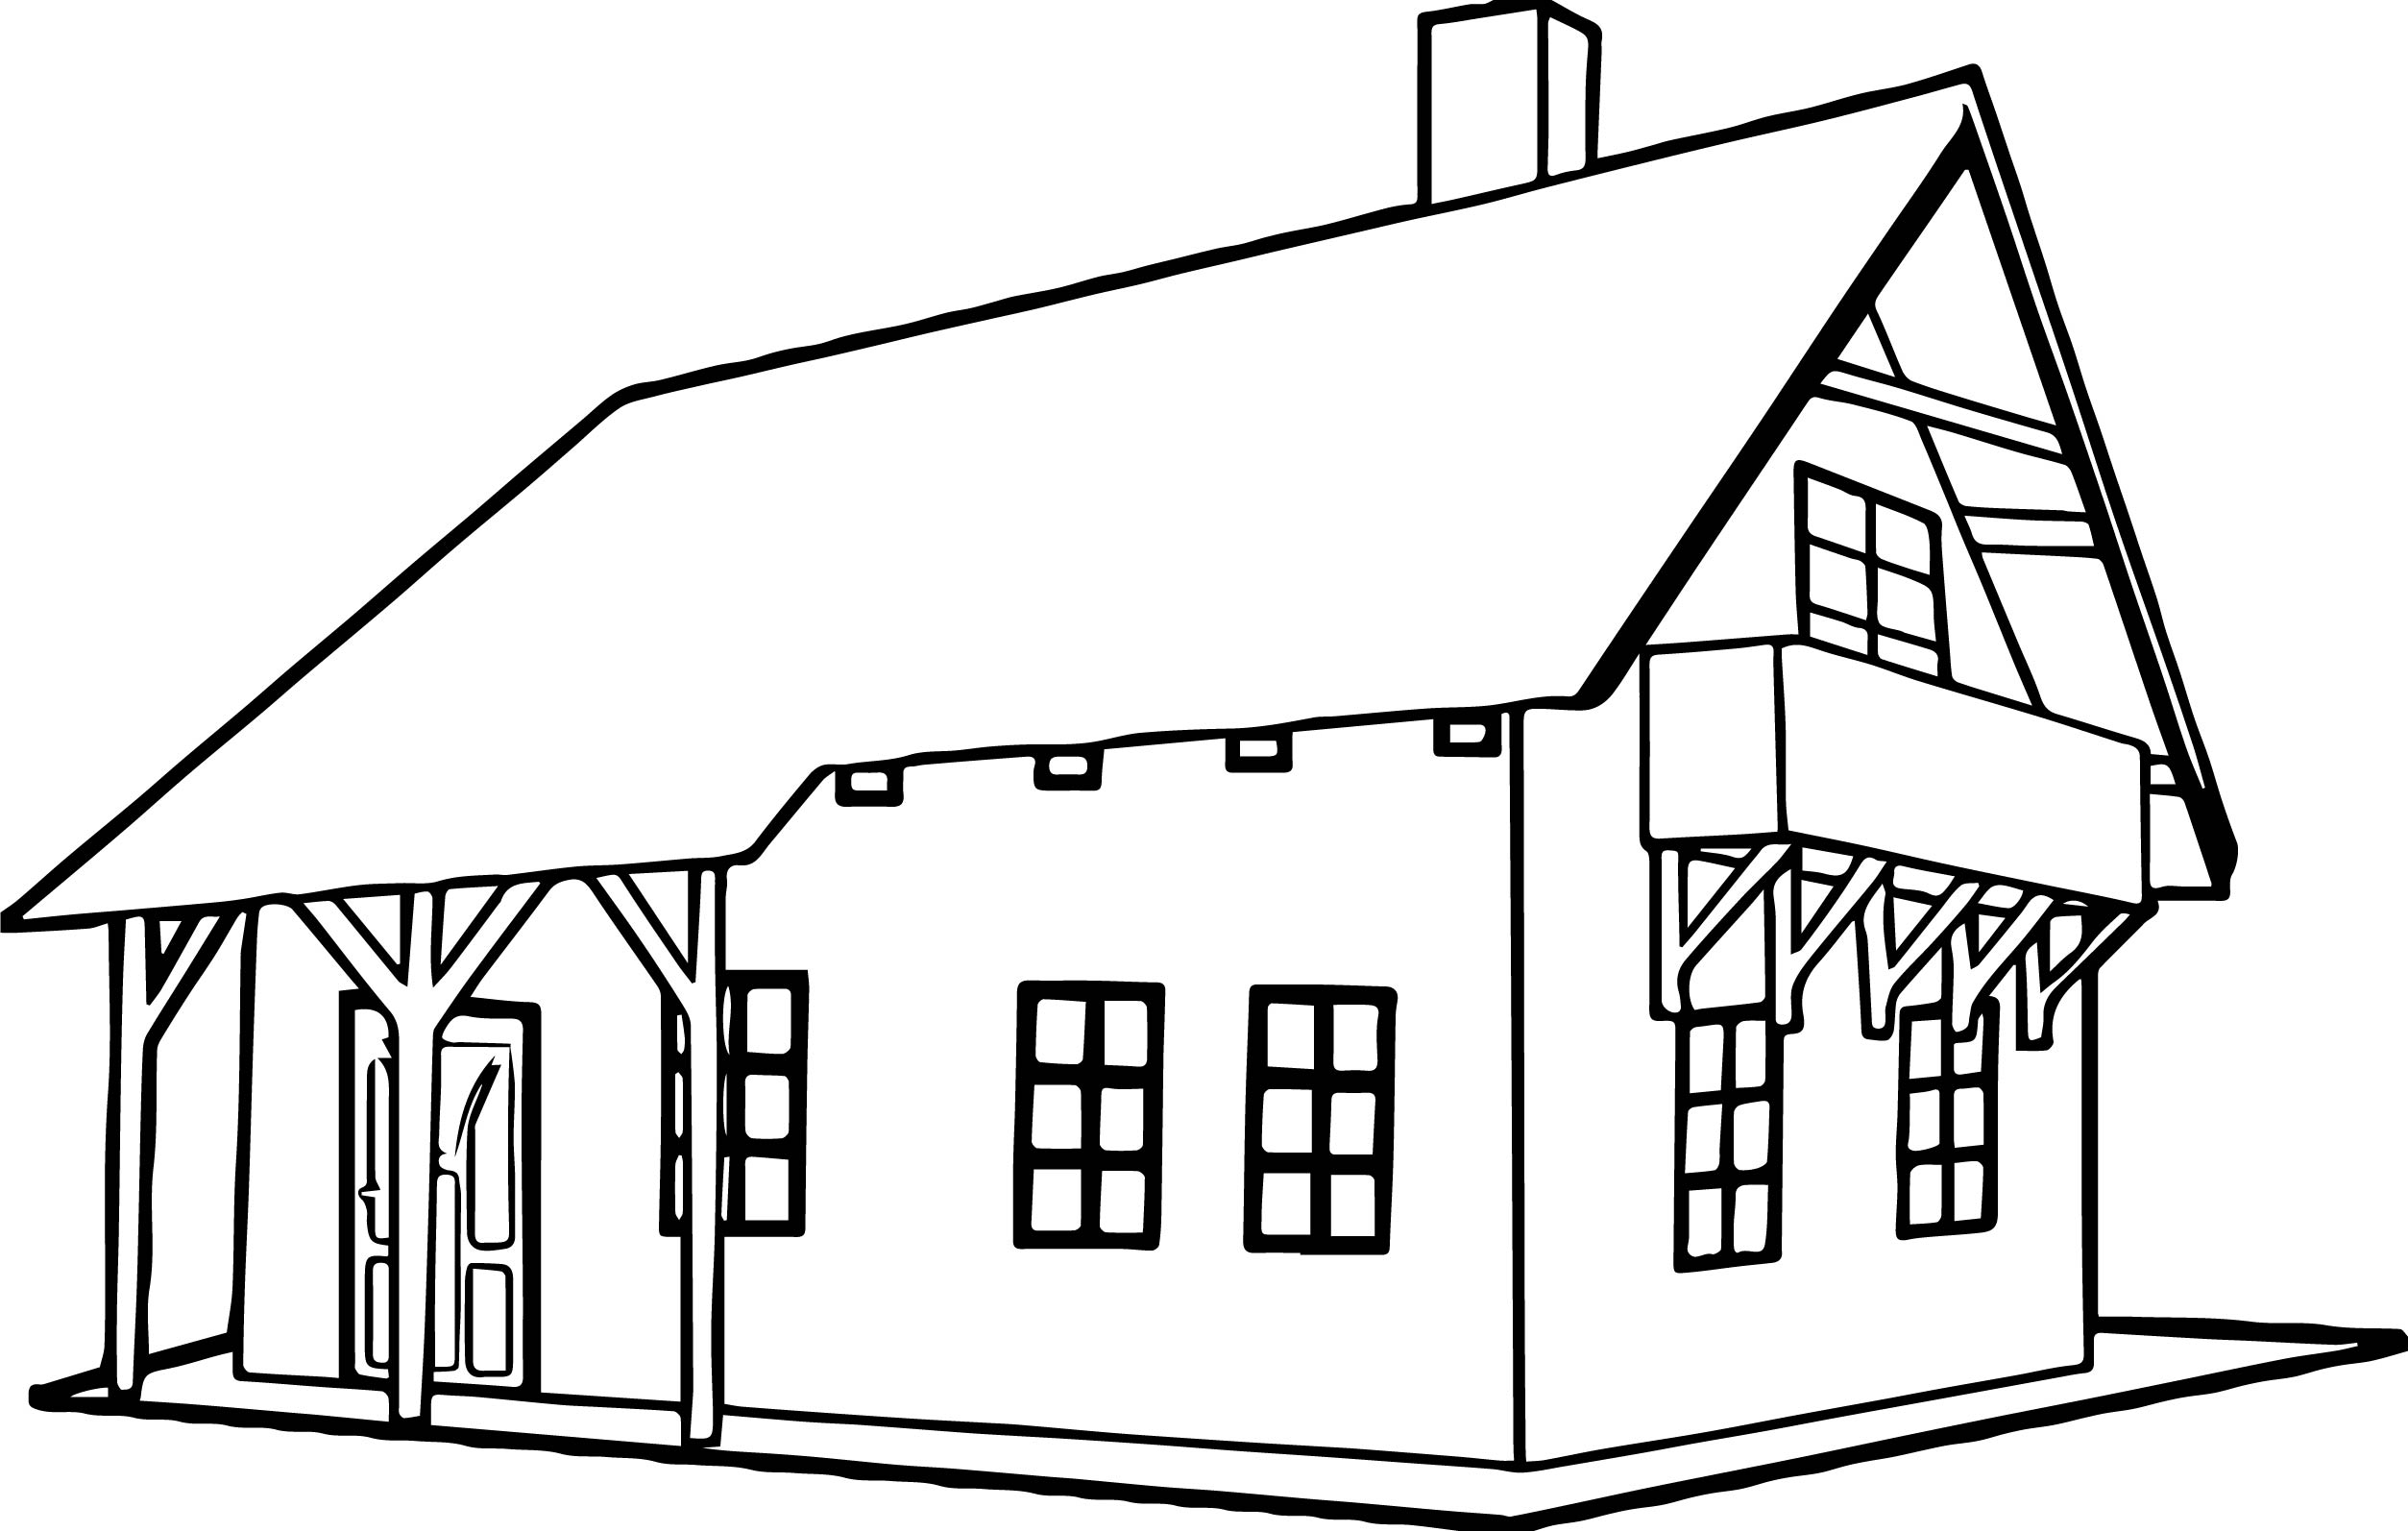 Machovka House Coloring Page Wecoloringpage Com